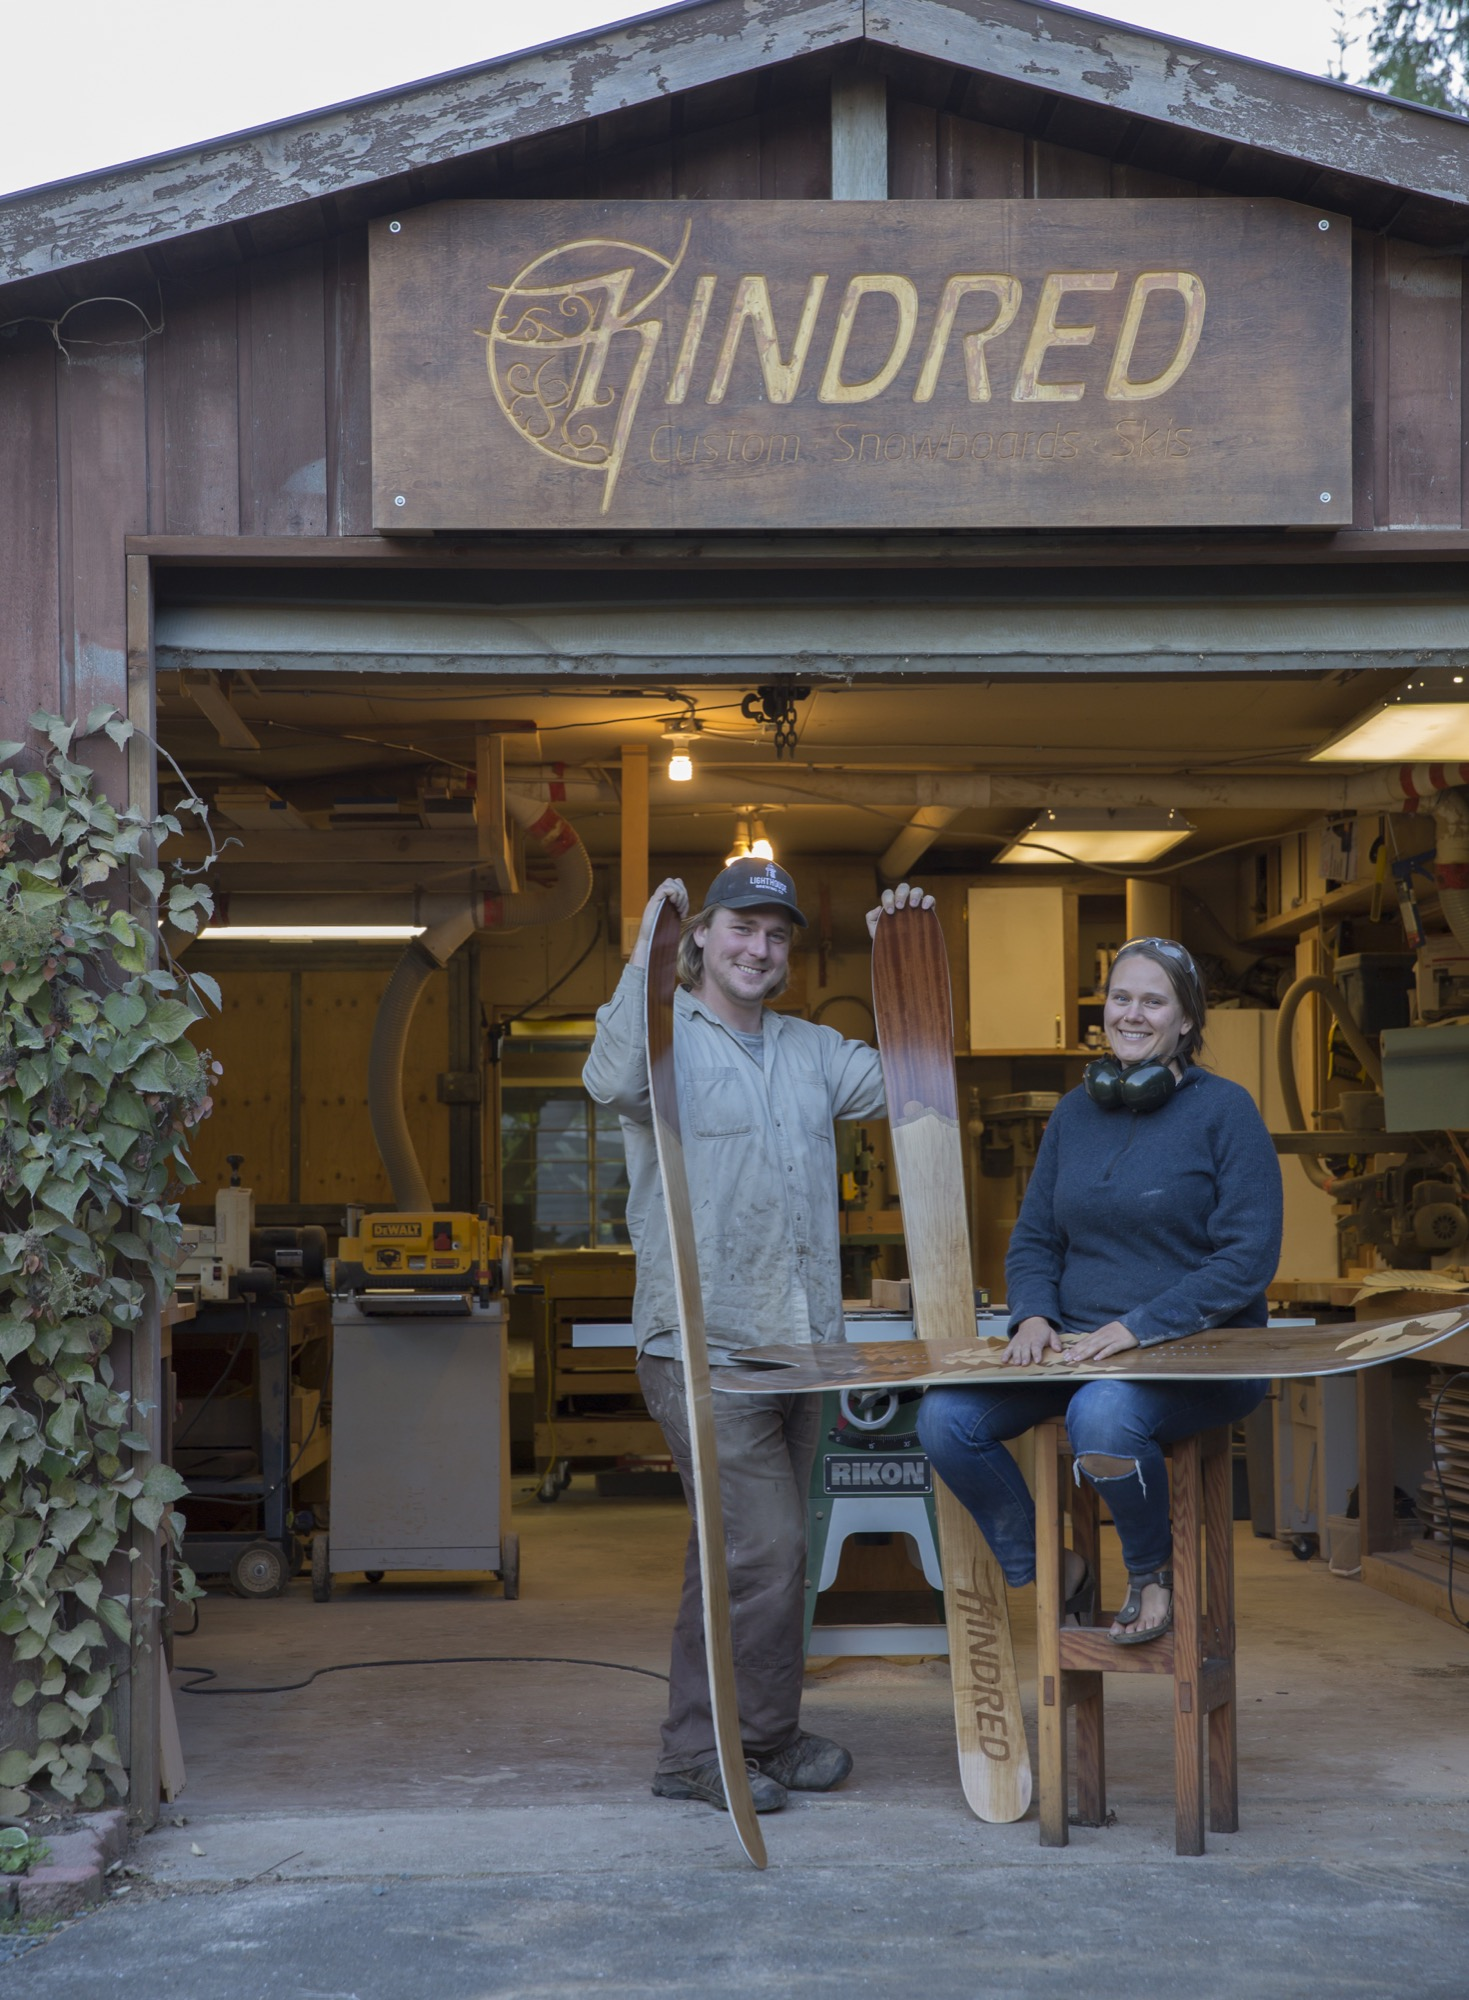 Kindred Snowboards / Photo by Andrew Pogue